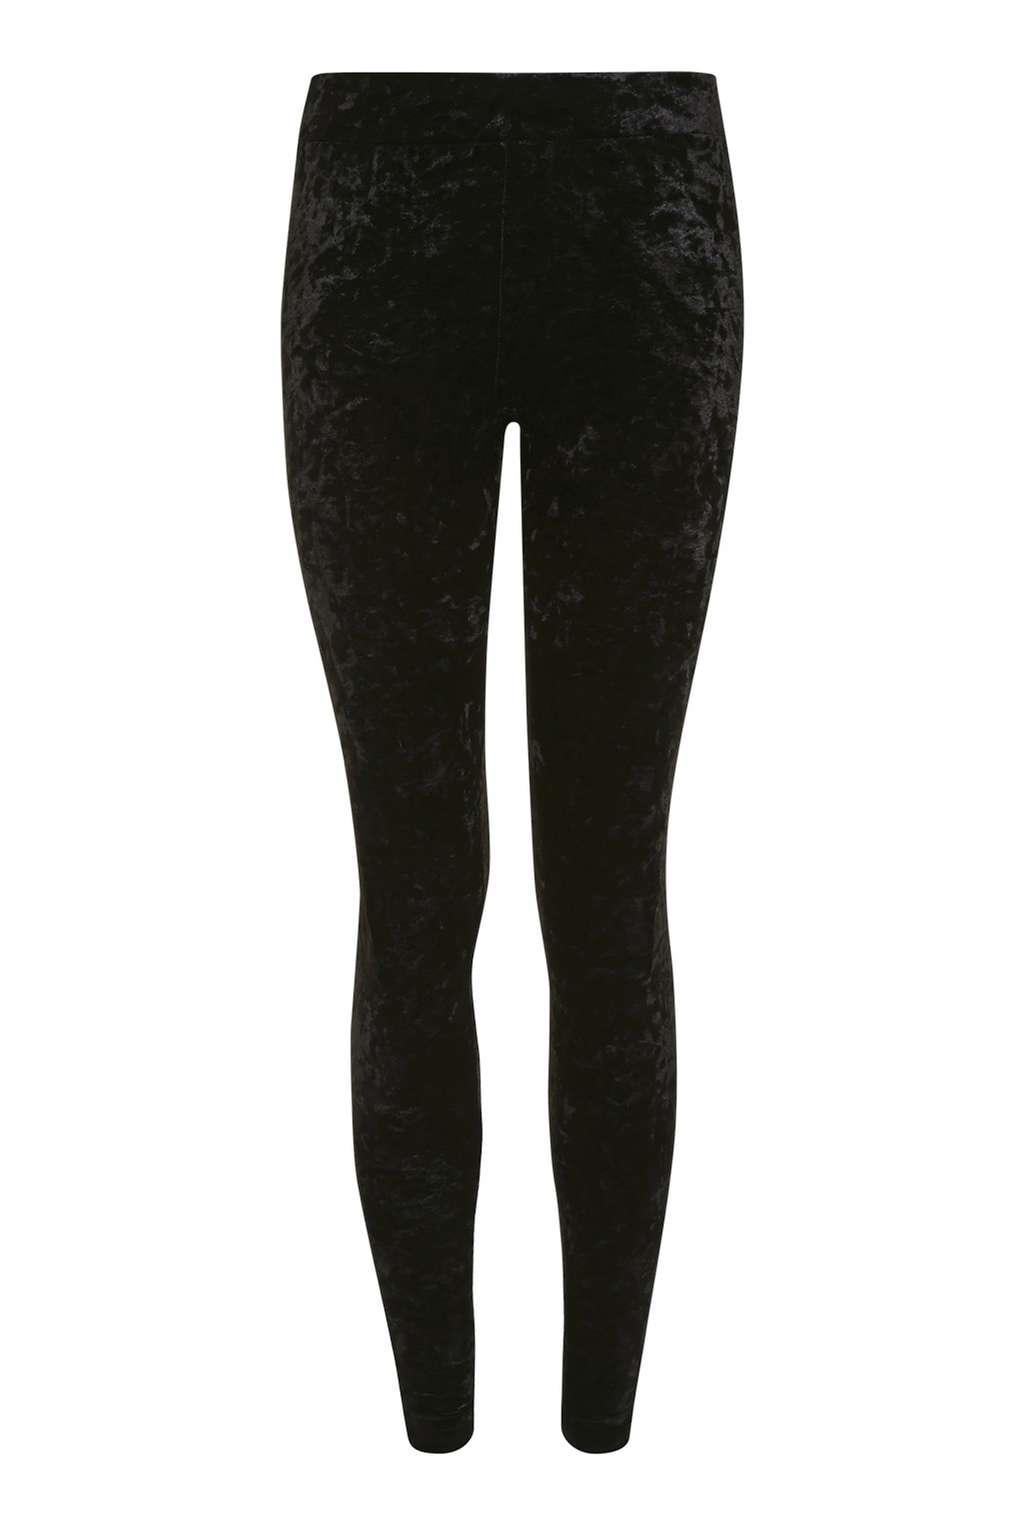 Velvet Leggings £19.00 Click to visit Topshop